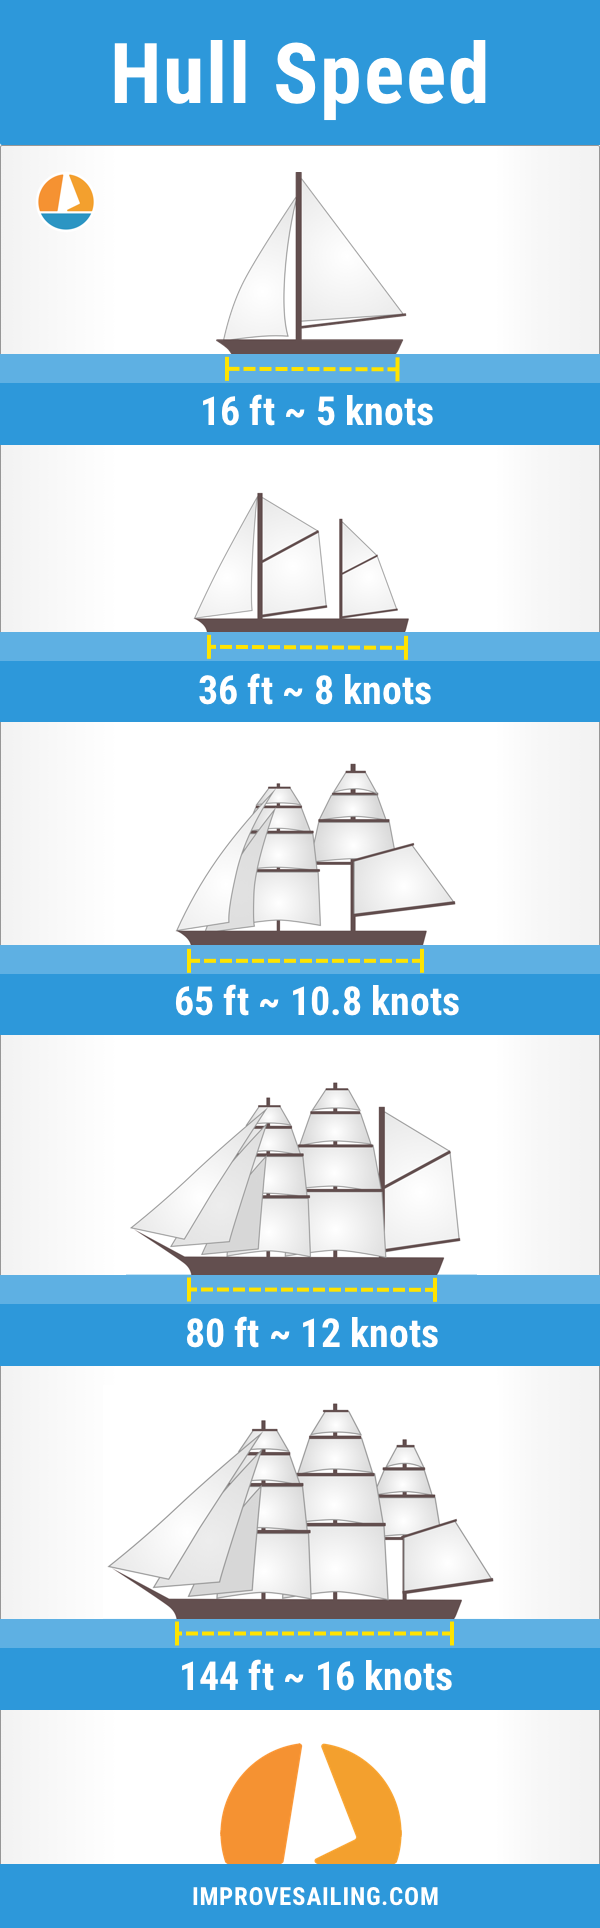 Infographic with different hull lengths of sailboats and their average maximum hull speed